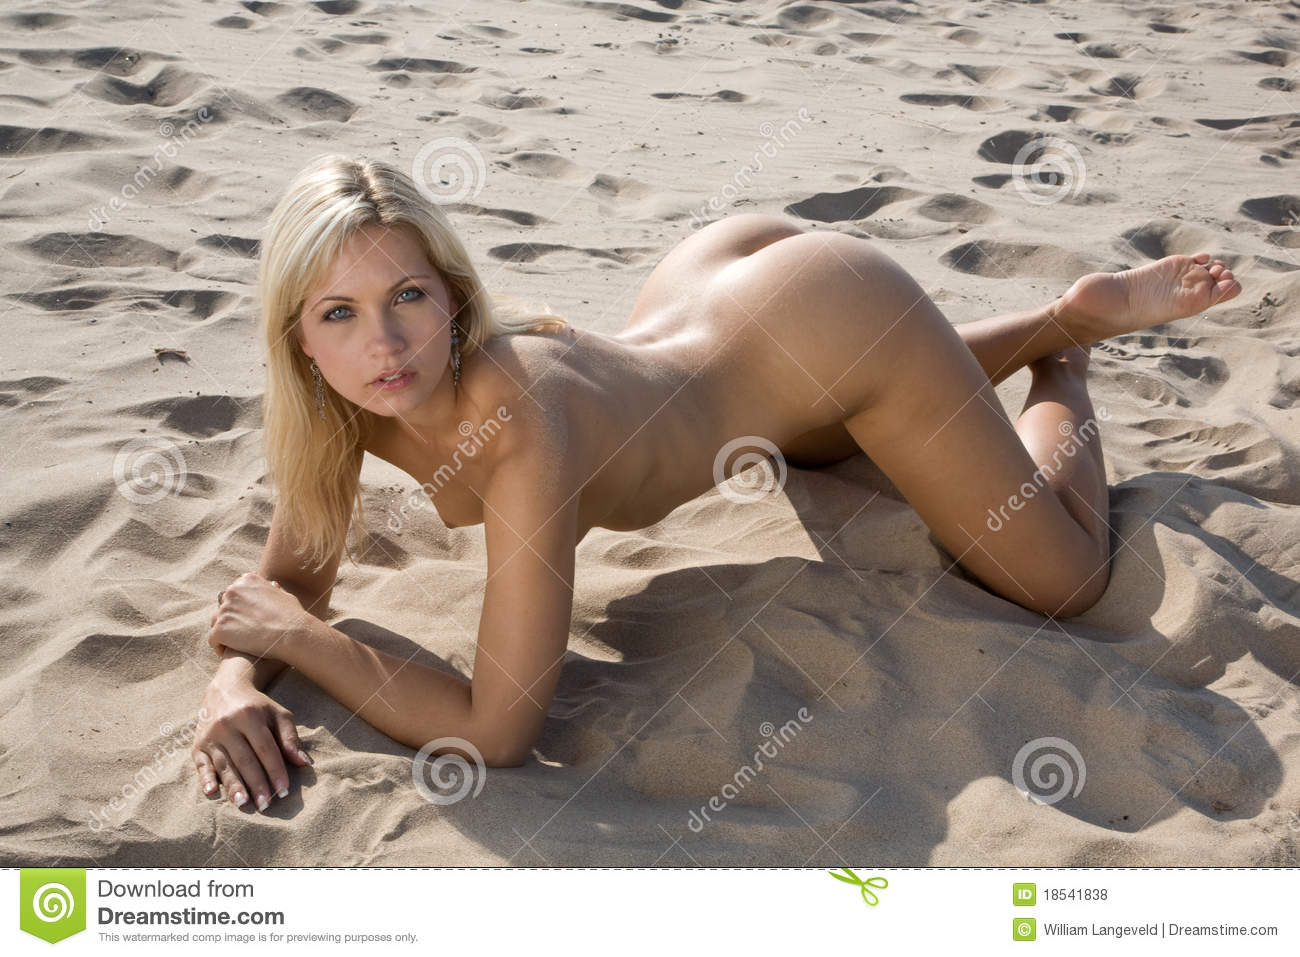 on sex Girl nude beach